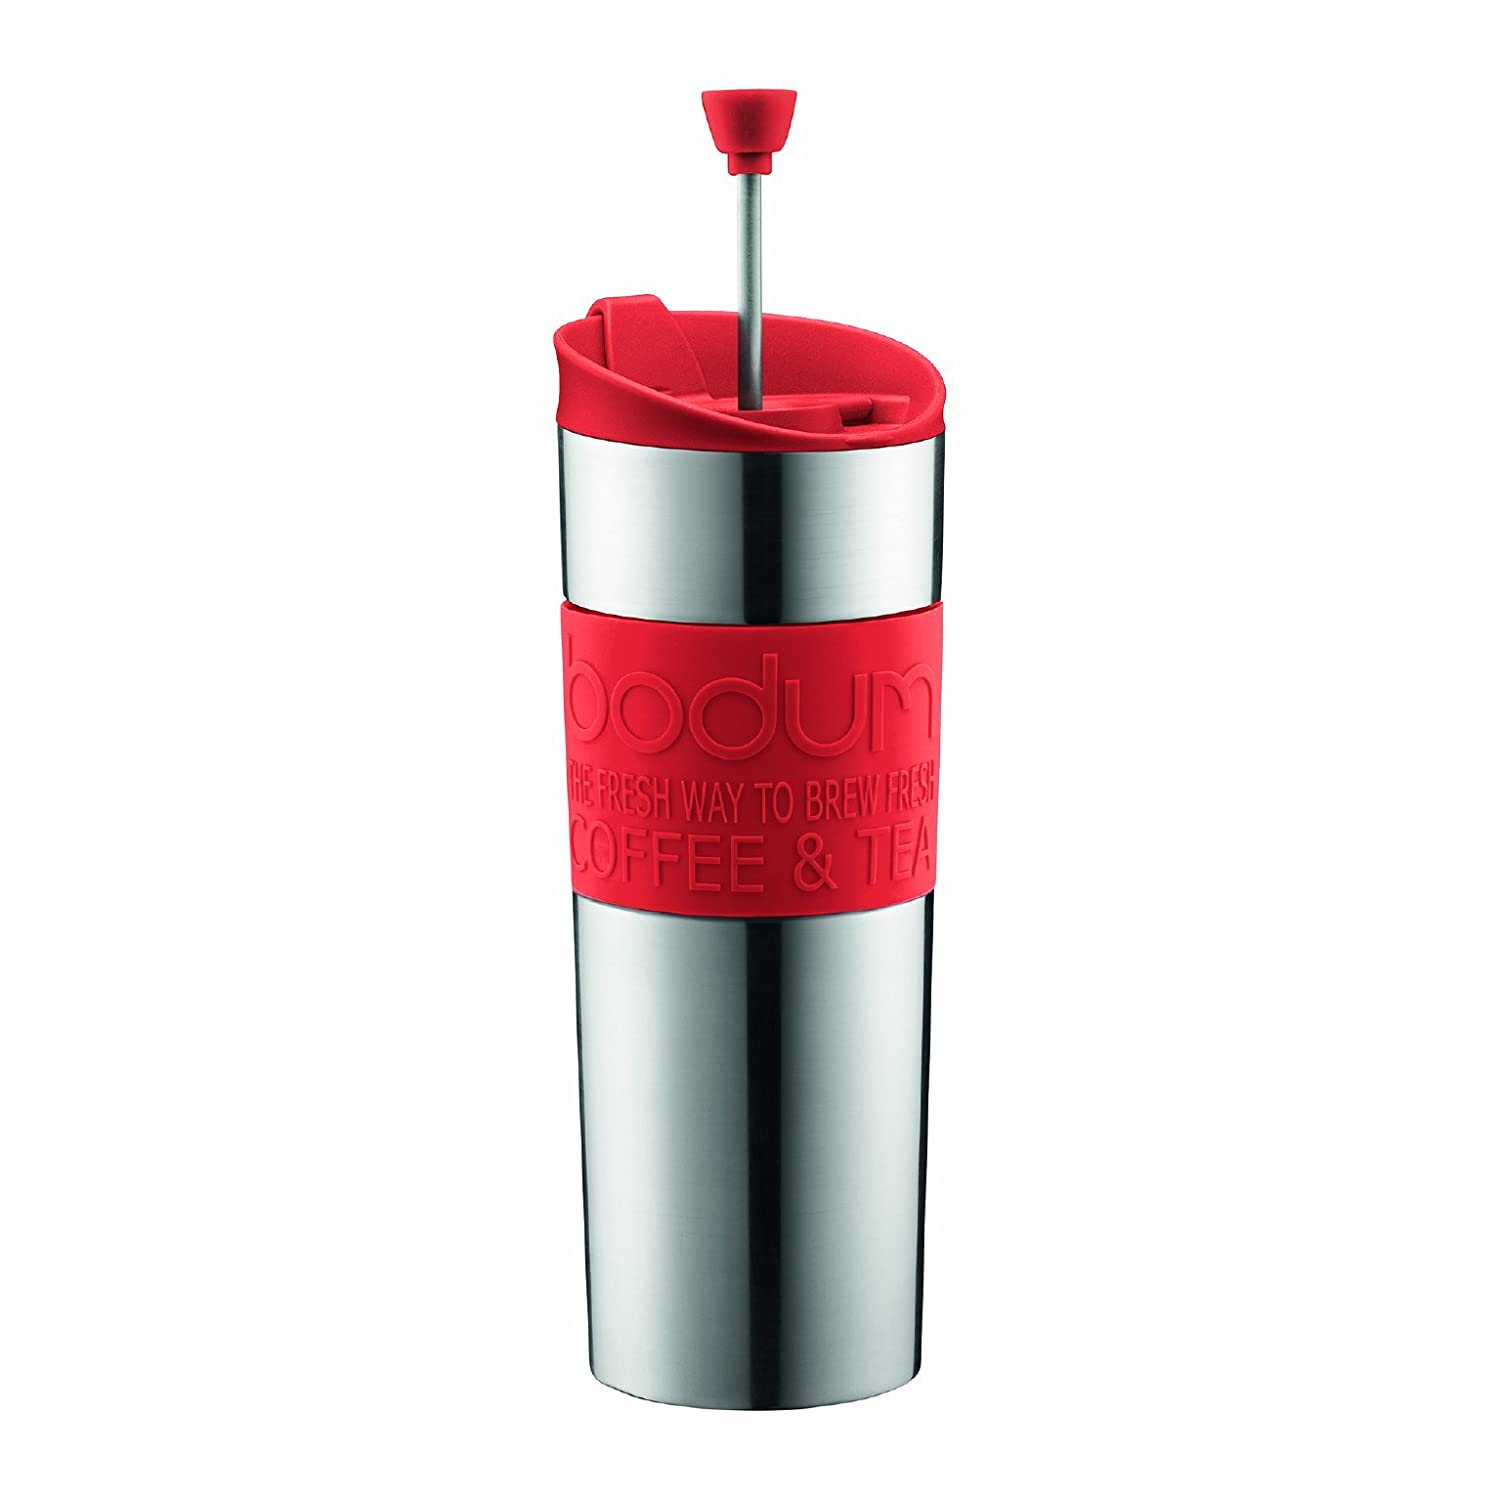 Bodum Travel Tea and Coffee Press, Stainless Steel Insulated Travel Mug (15 oz)